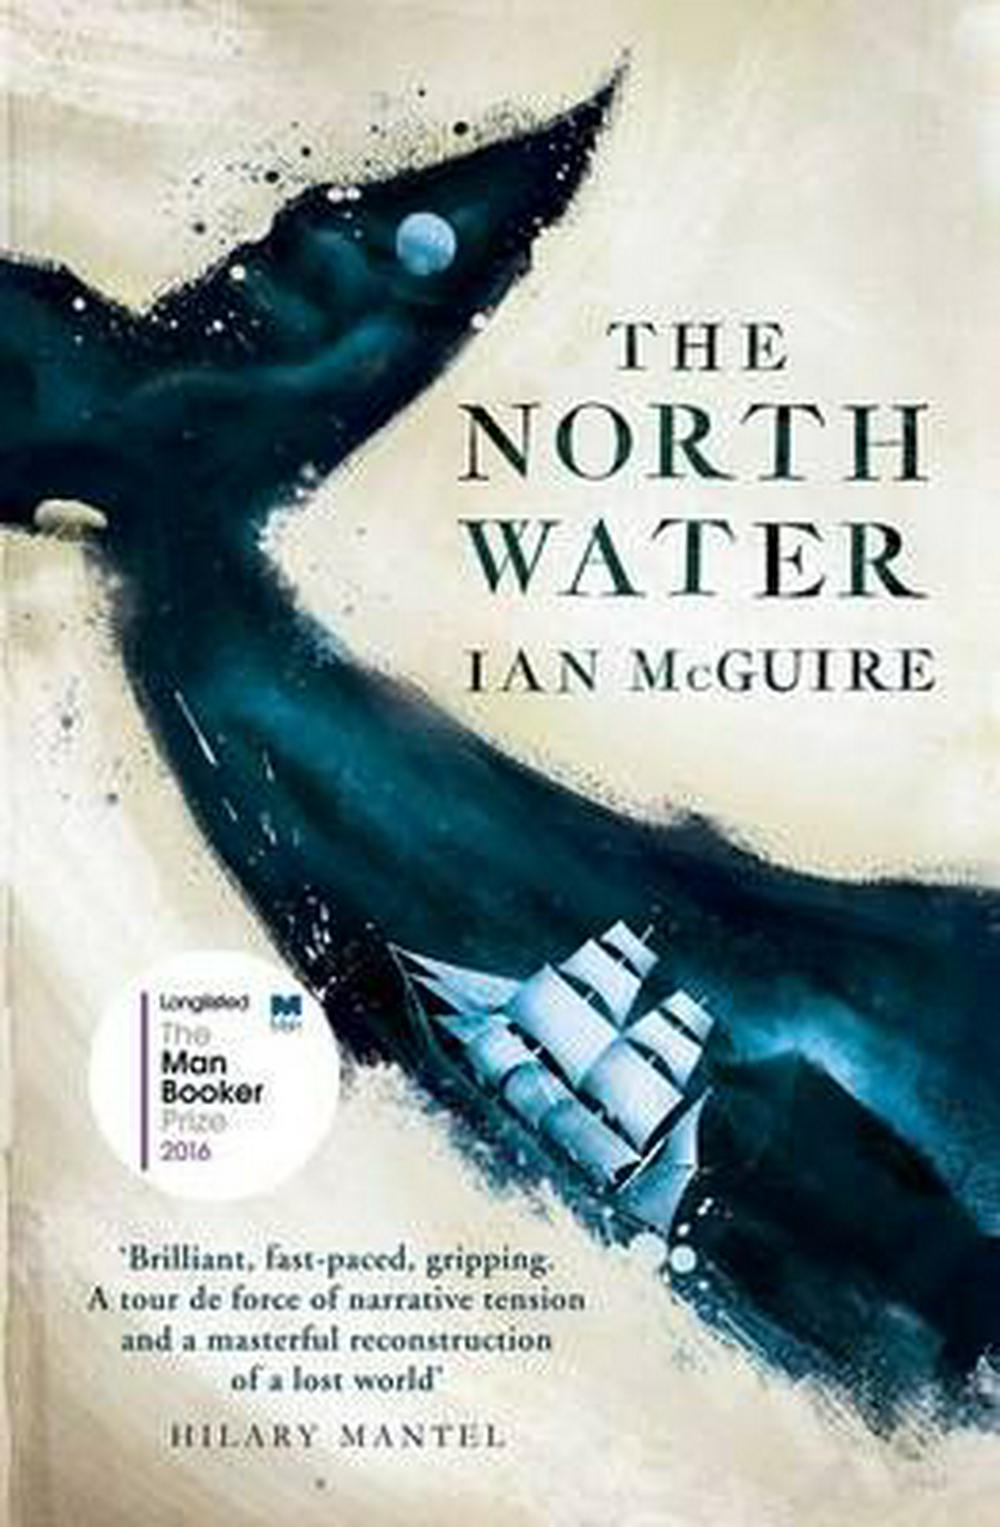 The North Water by Ian McGuire, ISBN: 9781471151255